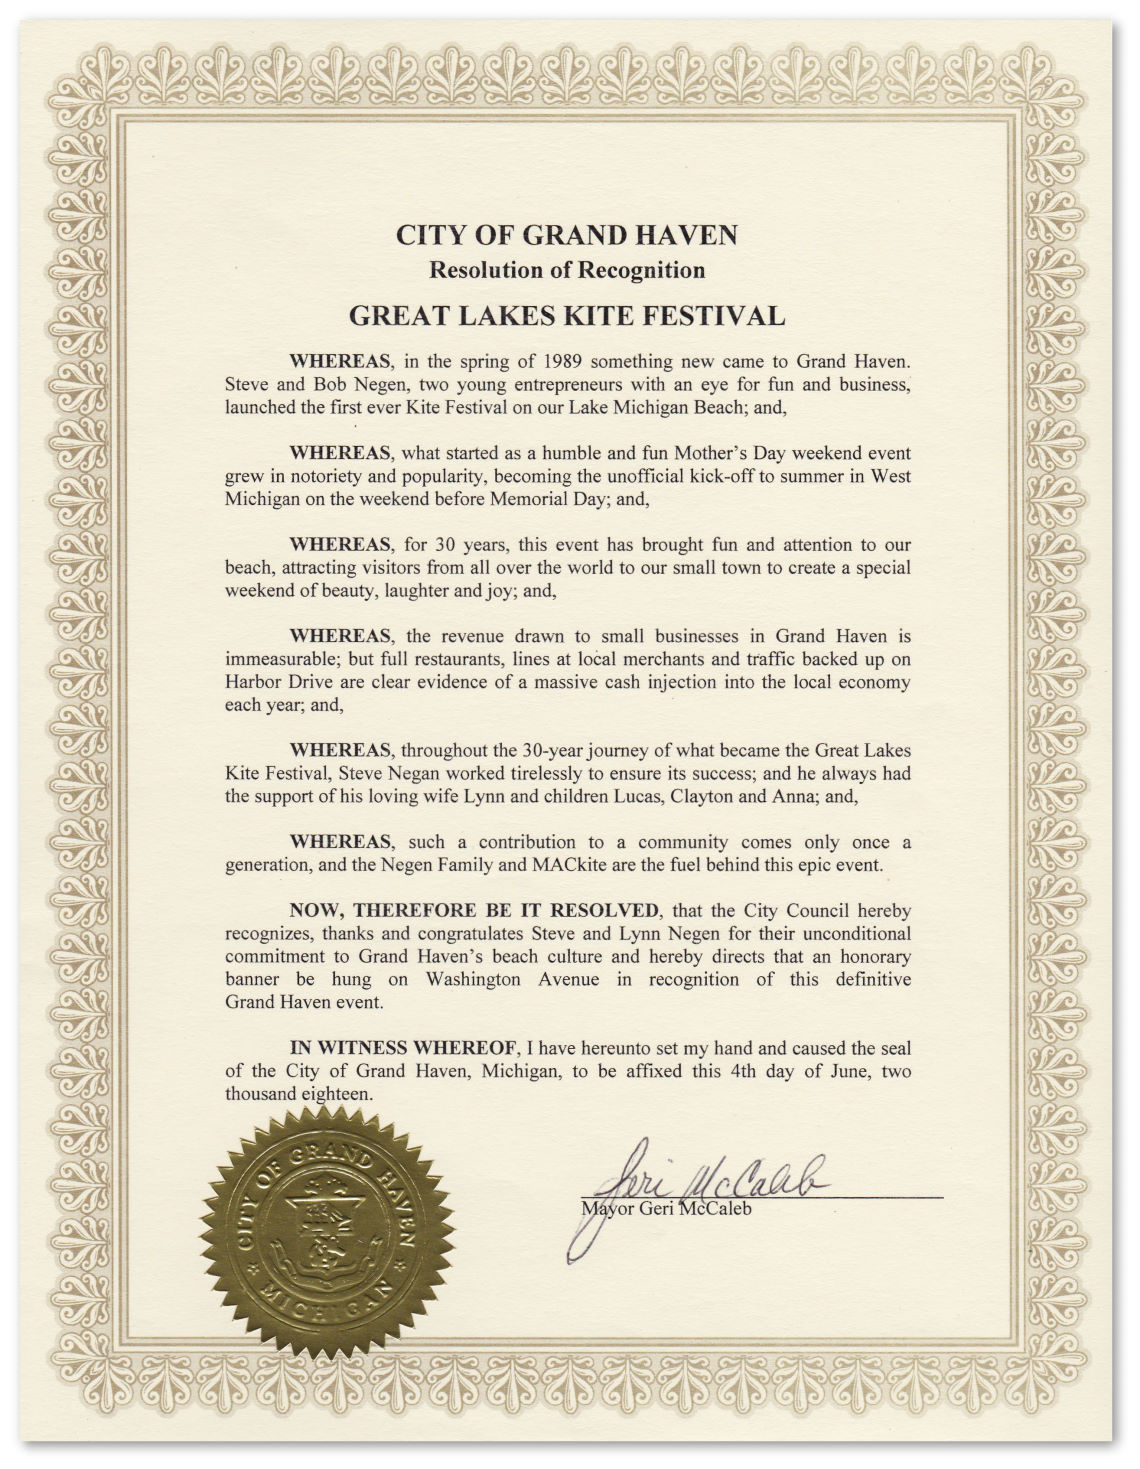 City of Grand Haven Resolution of Recognition for the Great Lakes Kite Festival